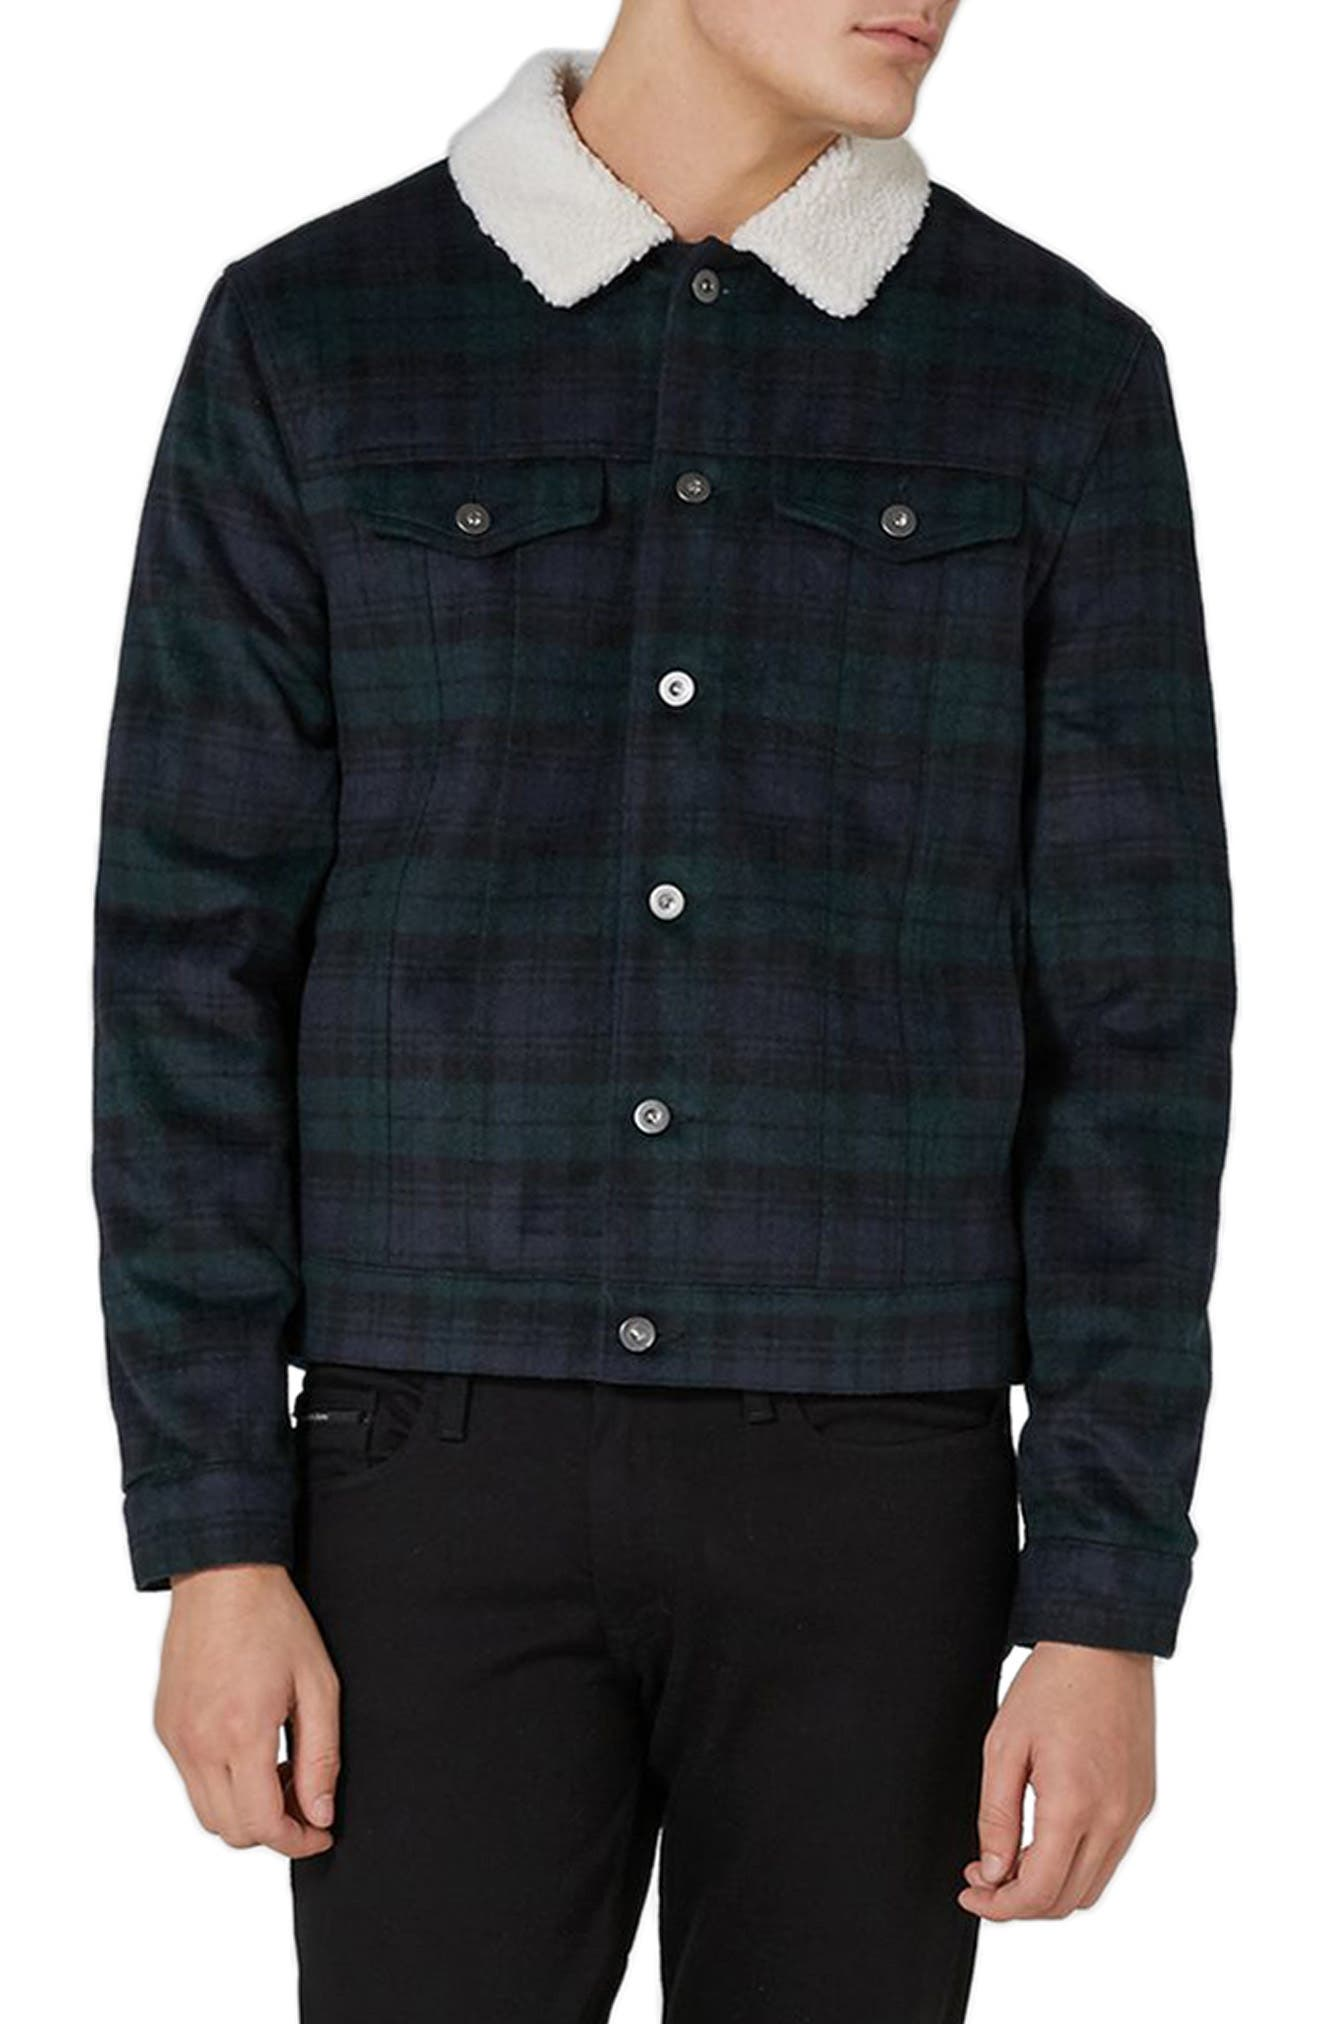 Borg Collar Black Watch Plaid Western Jacket,                             Main thumbnail 1, color,                             430